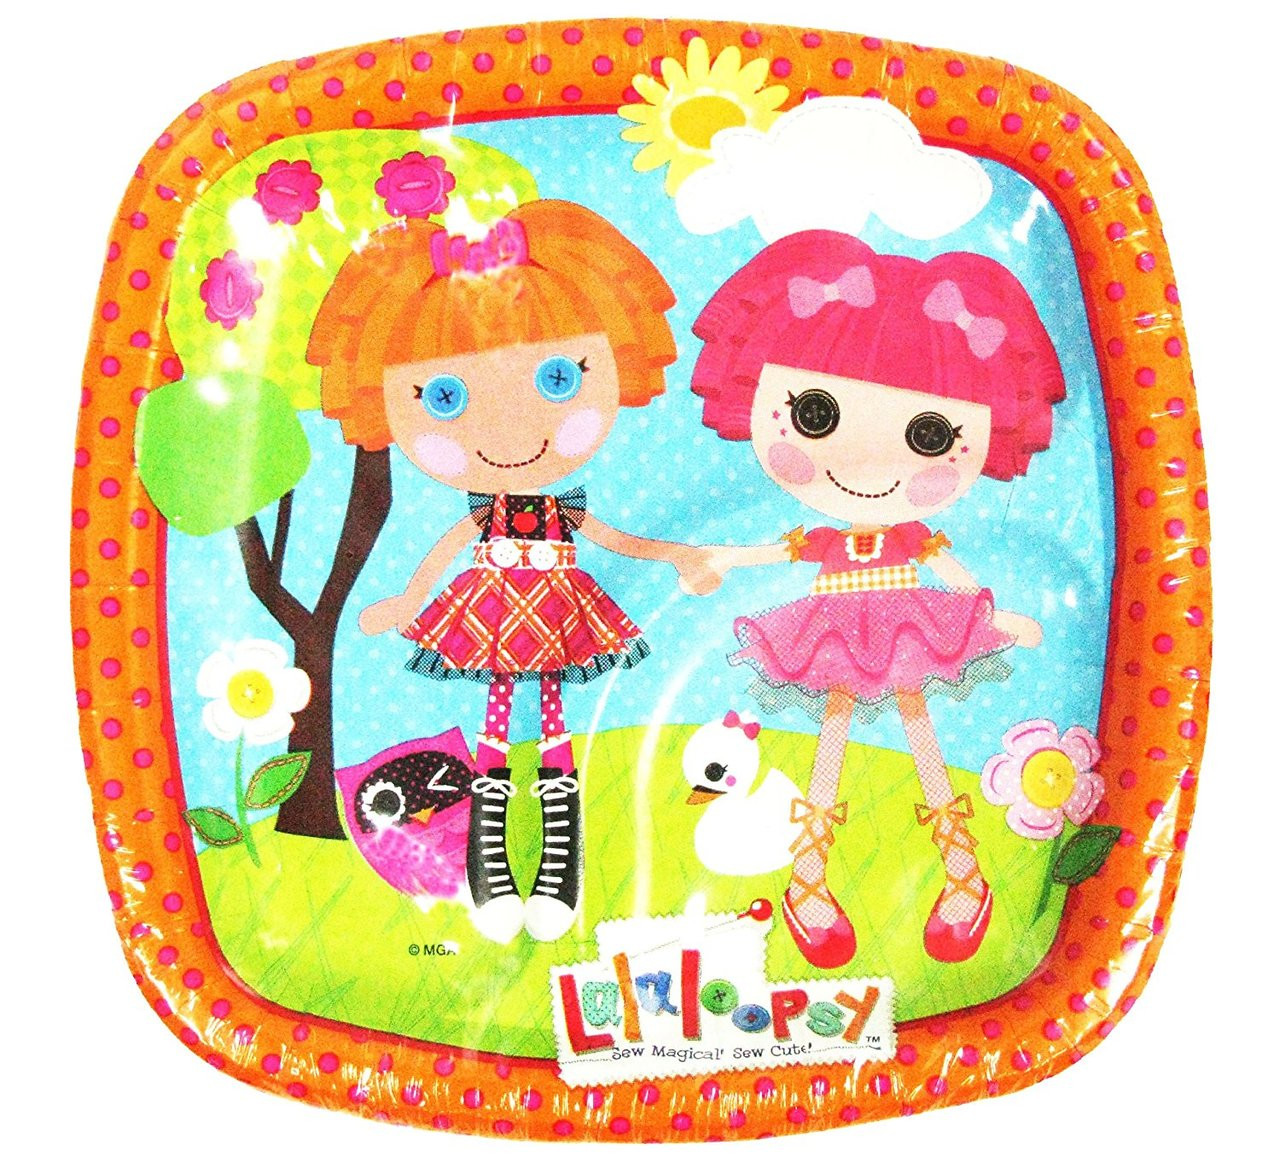 Lalaloopsy Small 7 Inch Party Cake Dessert Plates - Orange